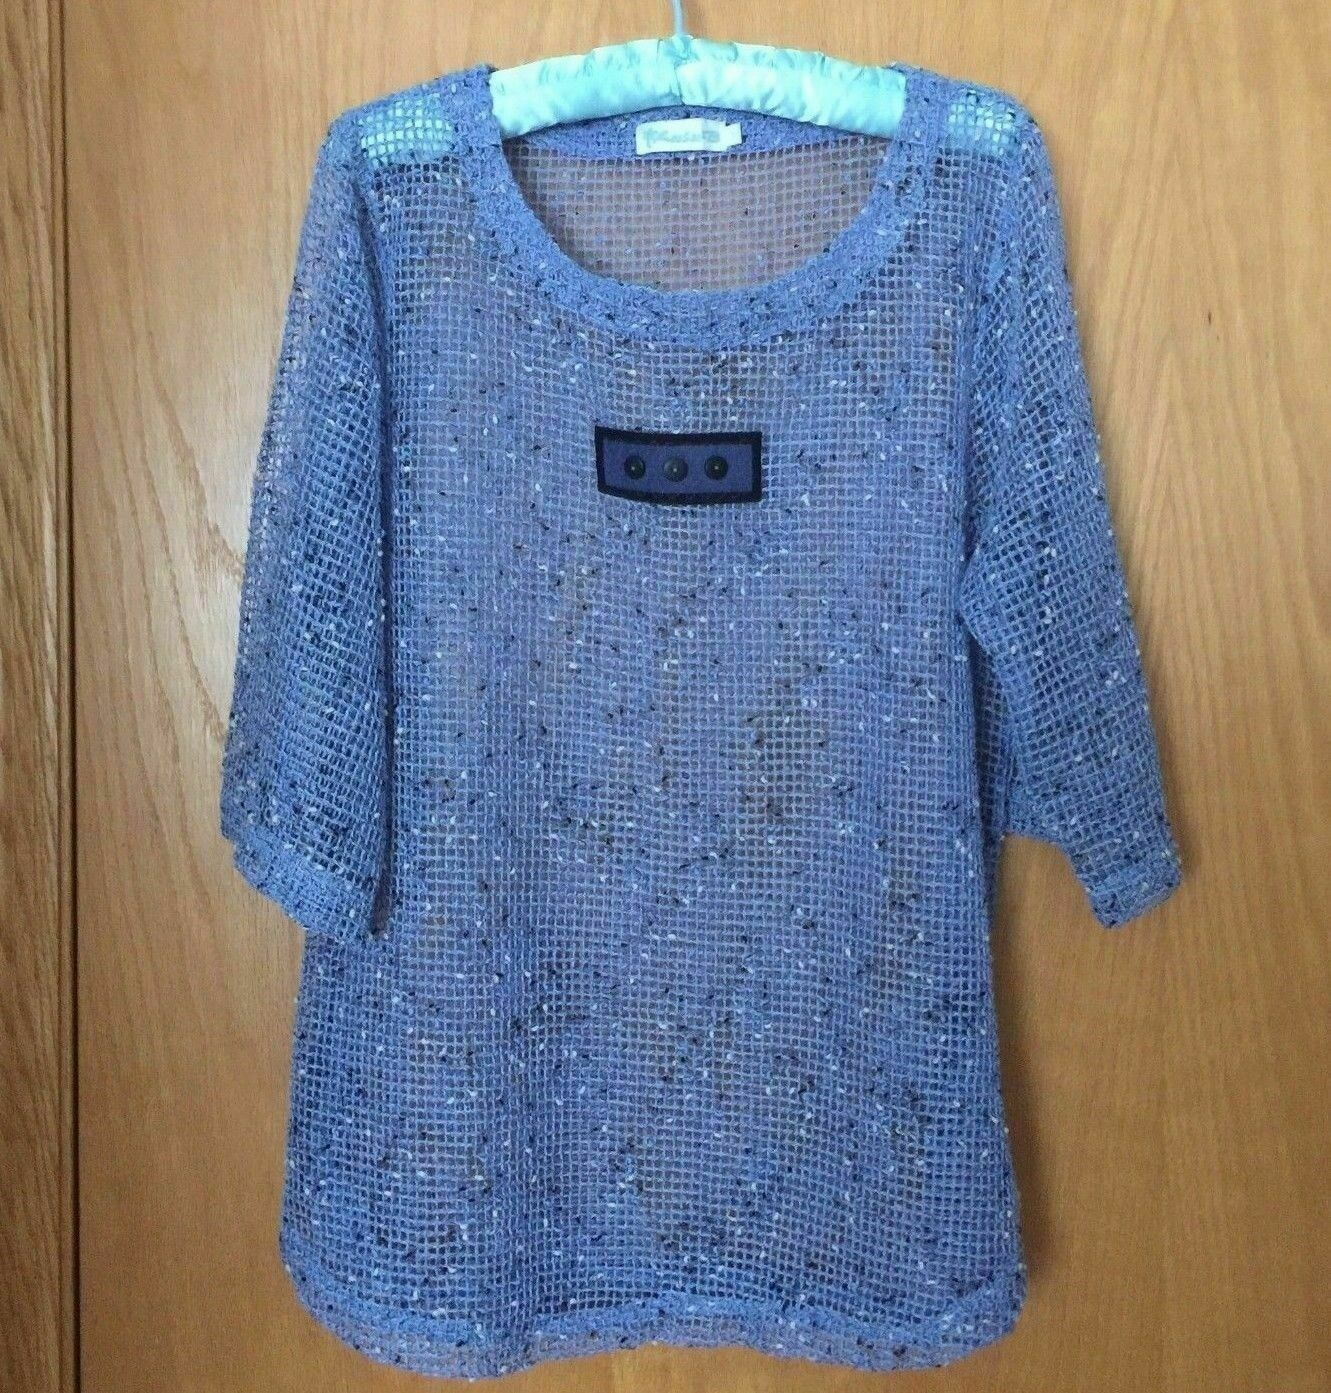 Primary image for LULU B Blue Embellished Sheer Blouse 3/4 Sleeve Mesh Open Weave Top Women Sz S